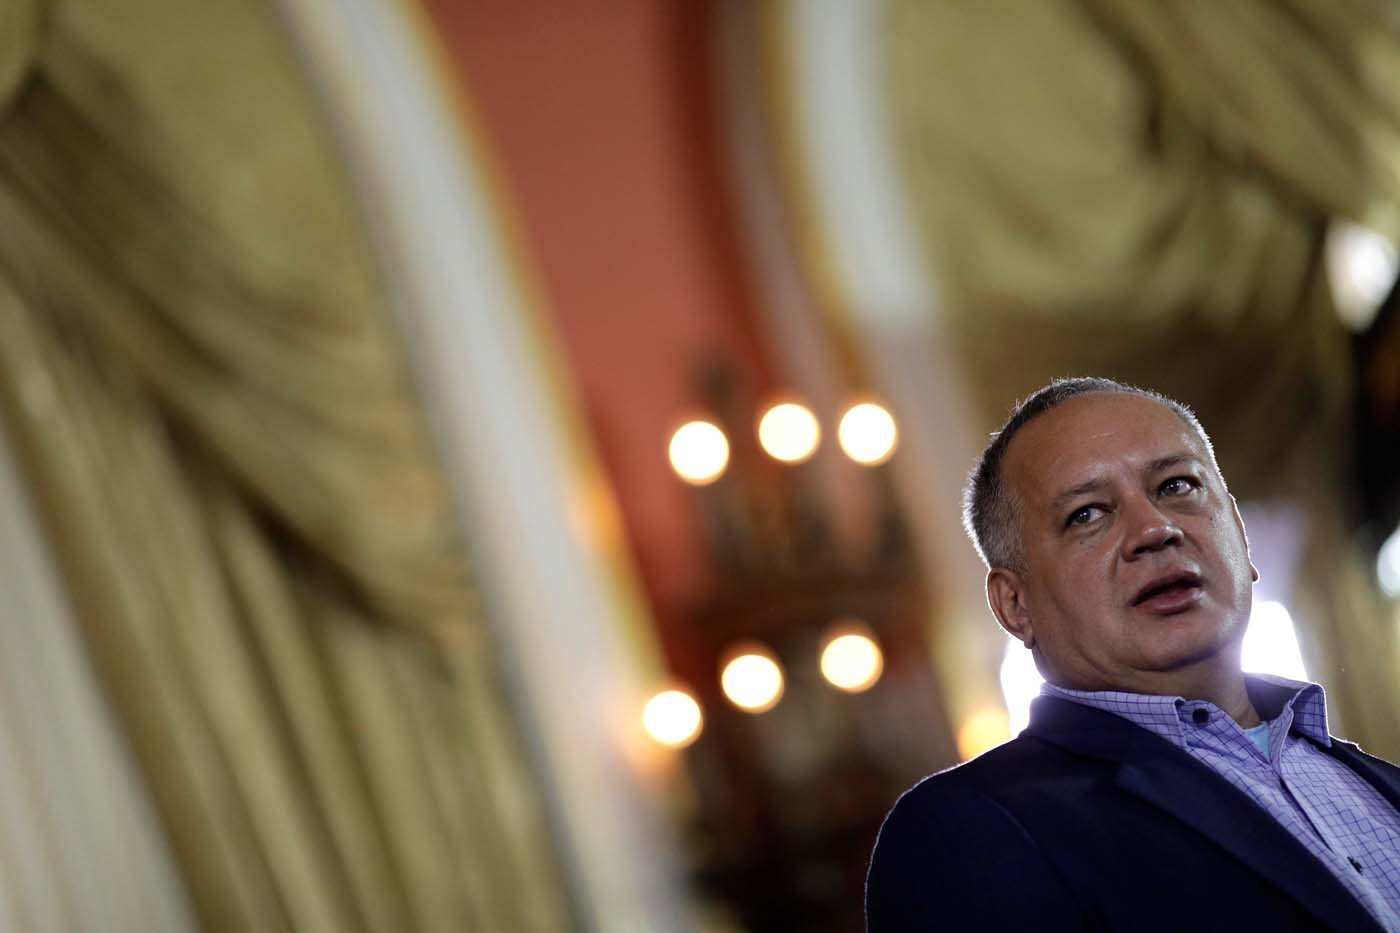 National Constituent Assembly member Diosdado Cabello attends Tarek William Saab's (not pictured) appointment ceremony as new chief prosecutor in Caracas, Venezuela, August 5, 2017. REUTERS/Ueslei Marcelino